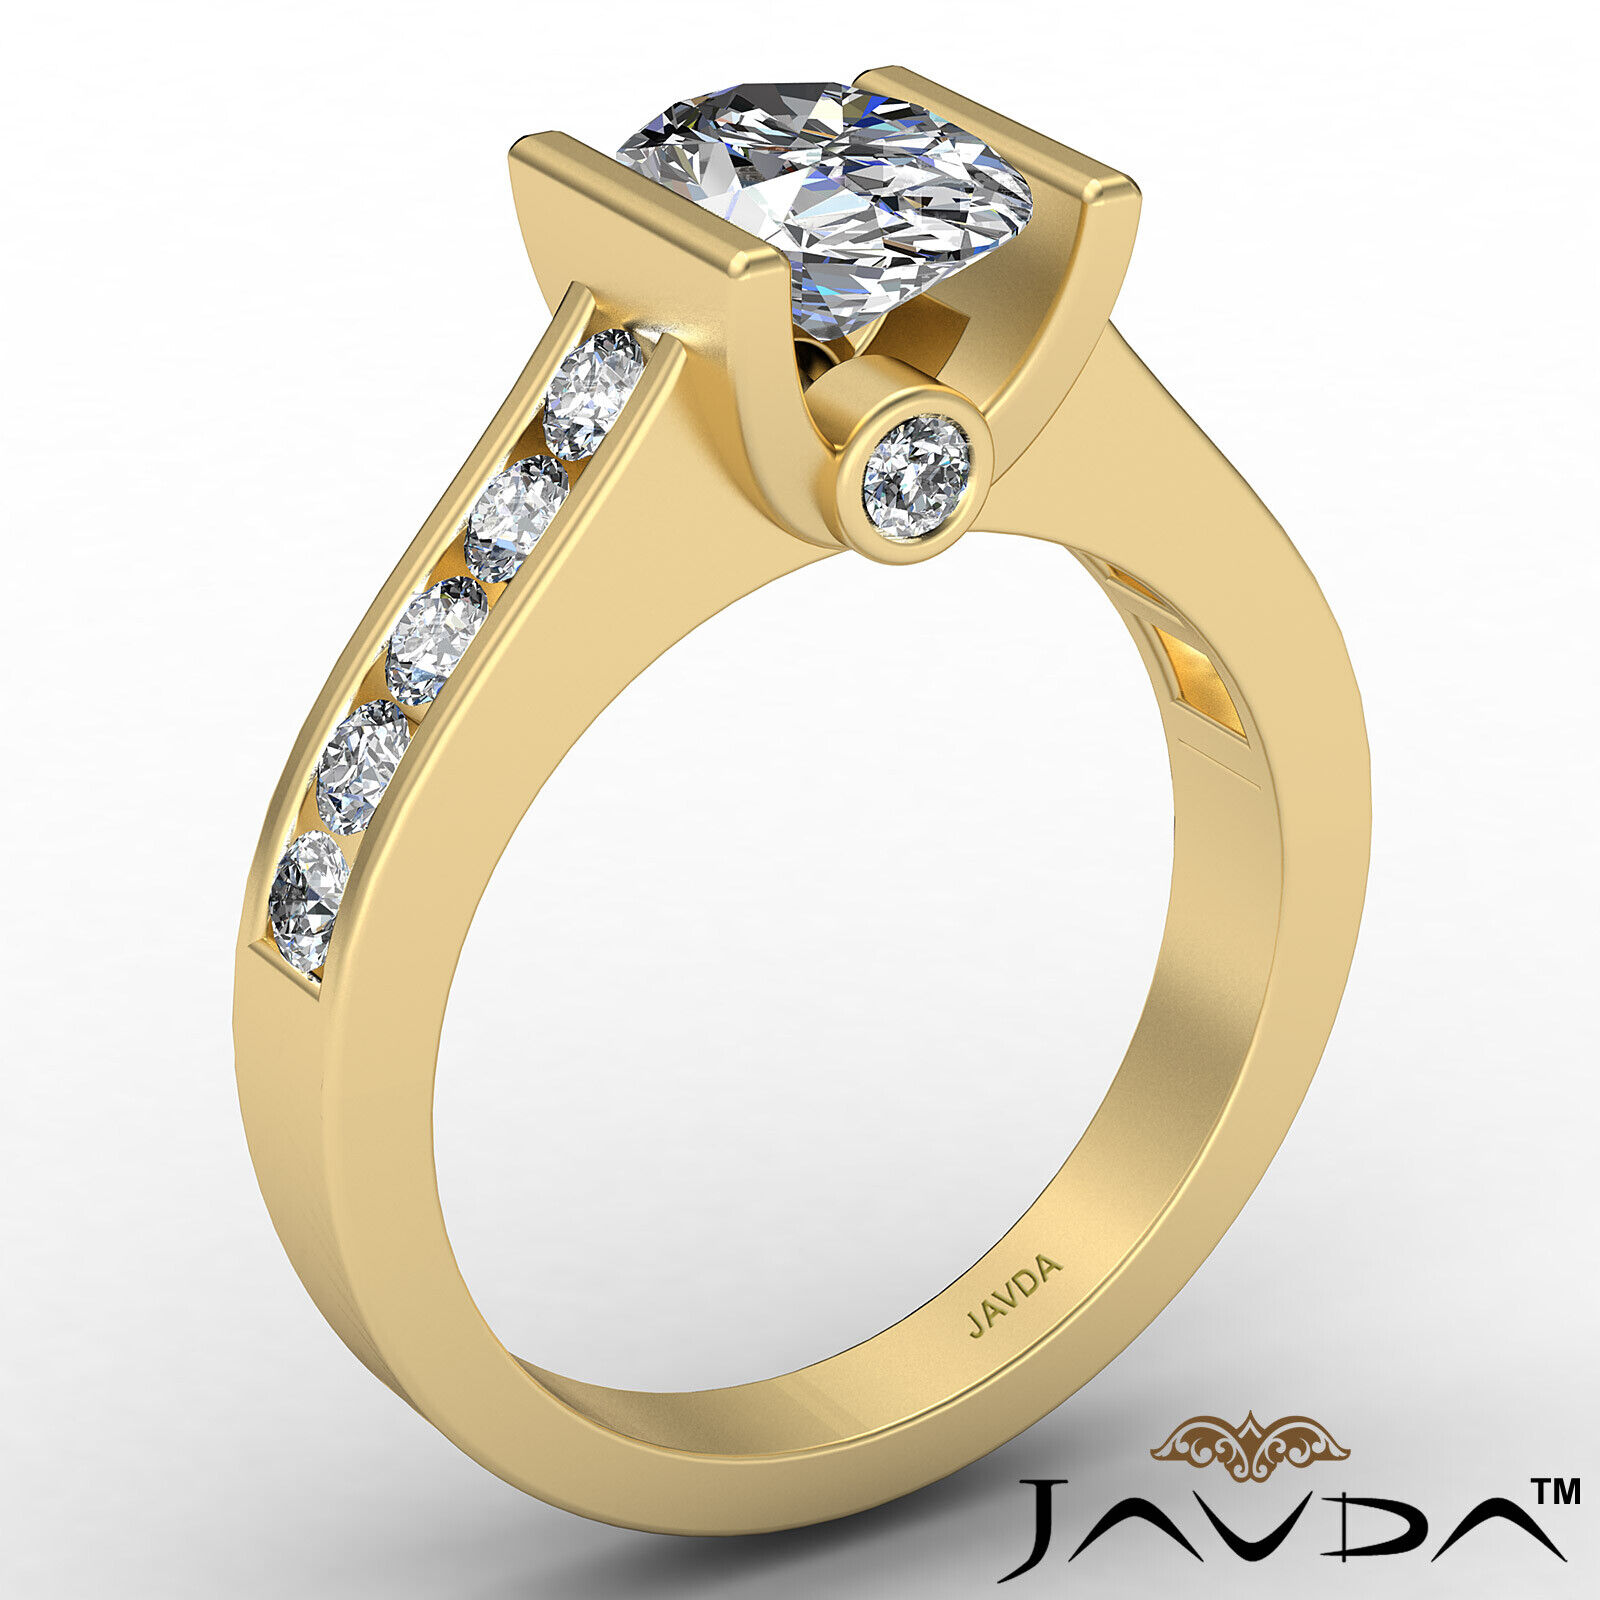 Oval Diamond Engagement Bezel Setting Ring GIA, E Color & SI2 clarity 1.4 ctw. 4